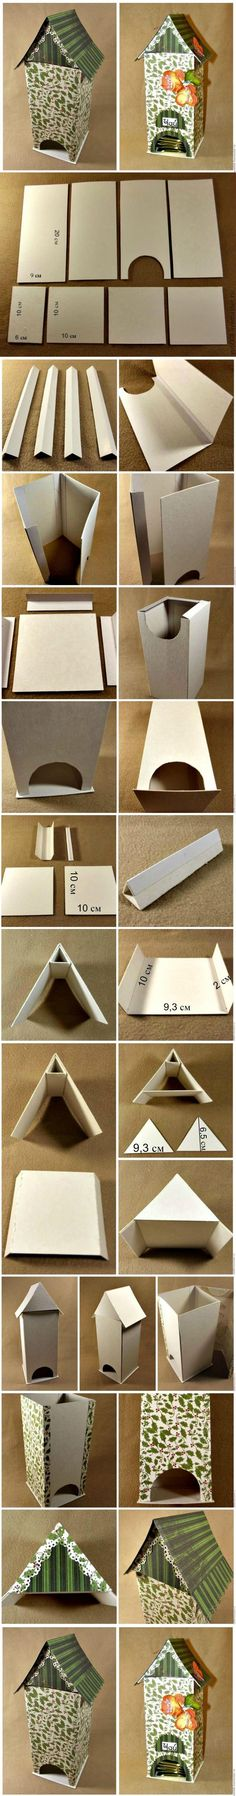 DIY Cardboard Tea Bag Dispenser | DIY Creative Ideas - really cute, practical, and shows how to reinforce and stabilize a cardboard structure.